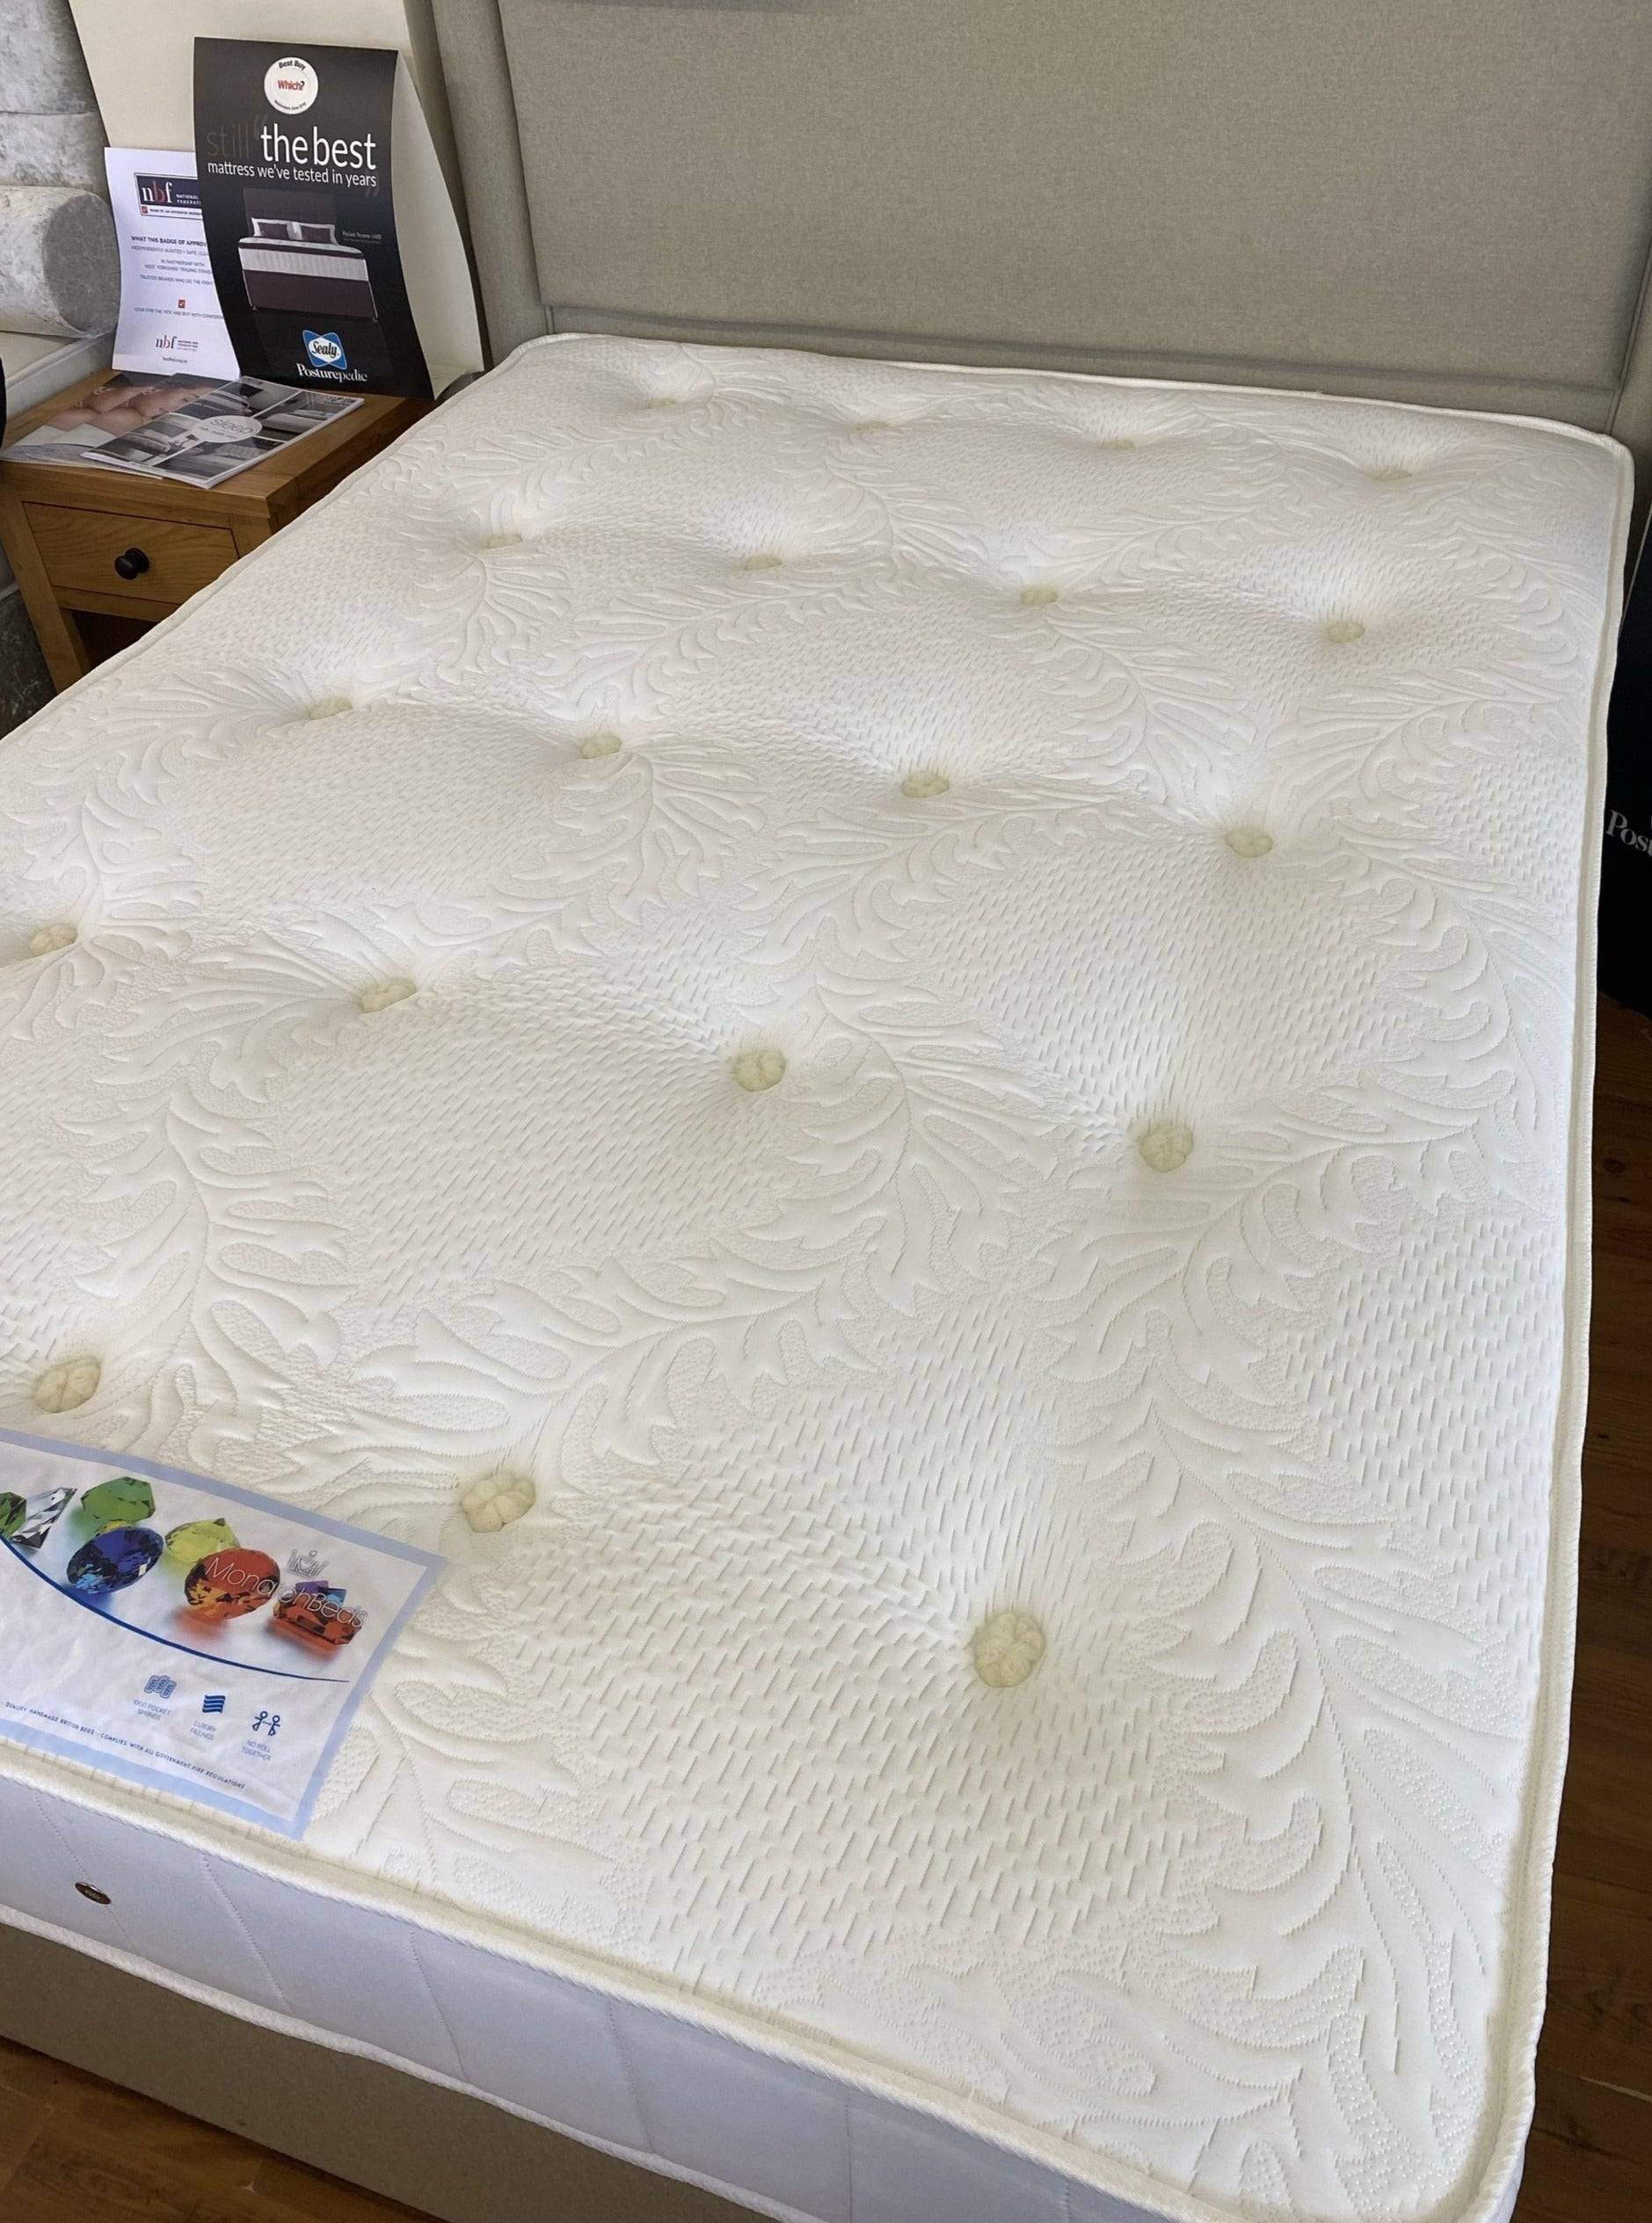 Opal 1000 pocket sprung mattress-bedsmart